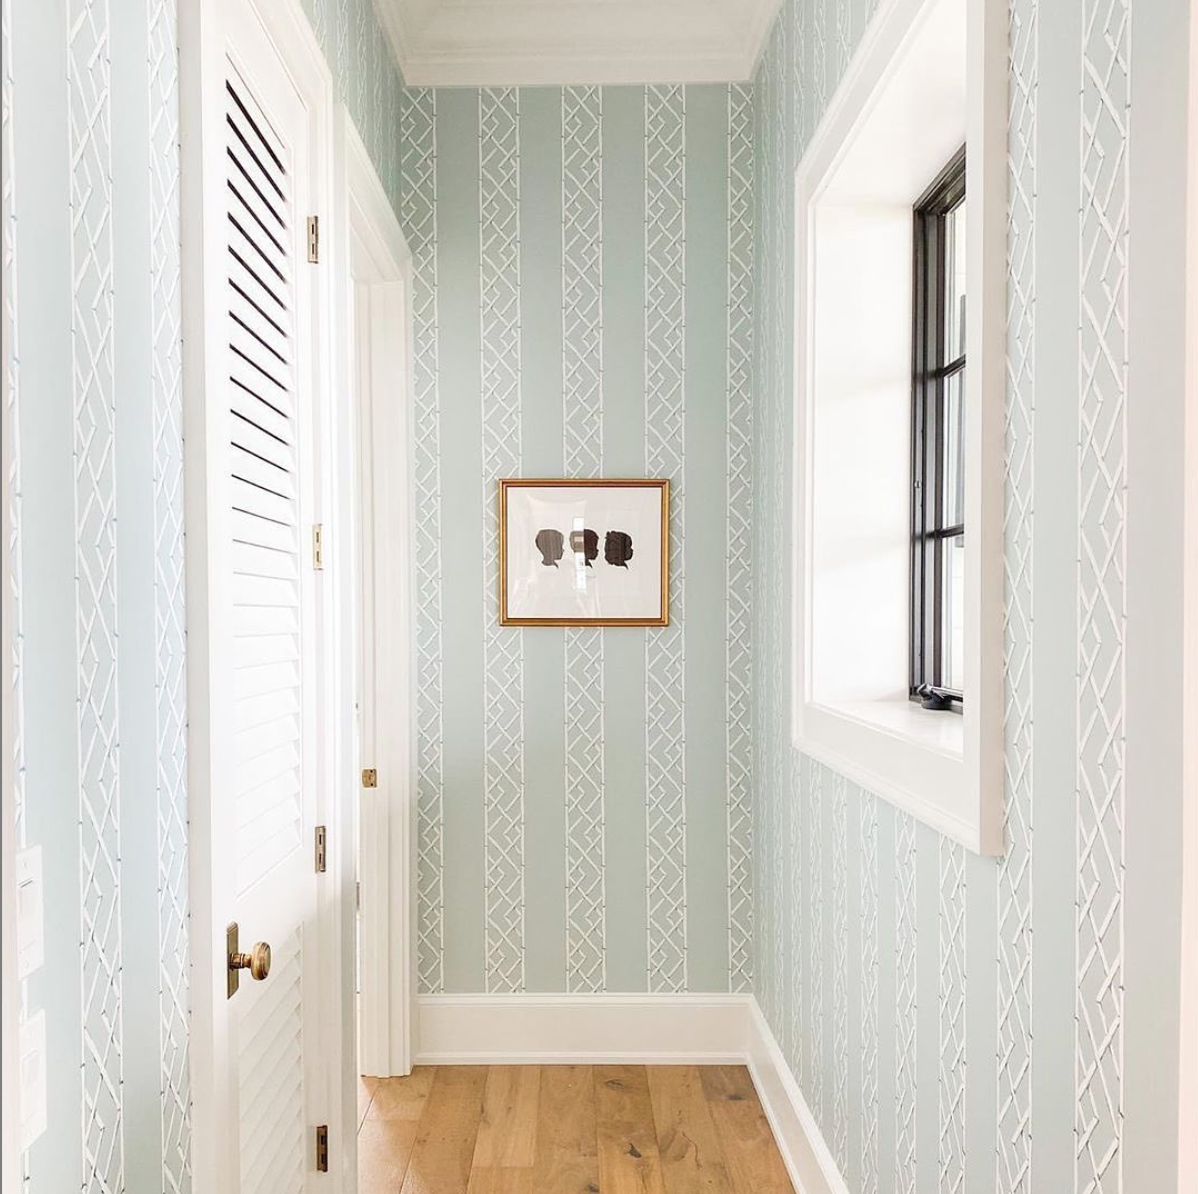 hallway with patterned wallpaper and small picture framed in gold frame